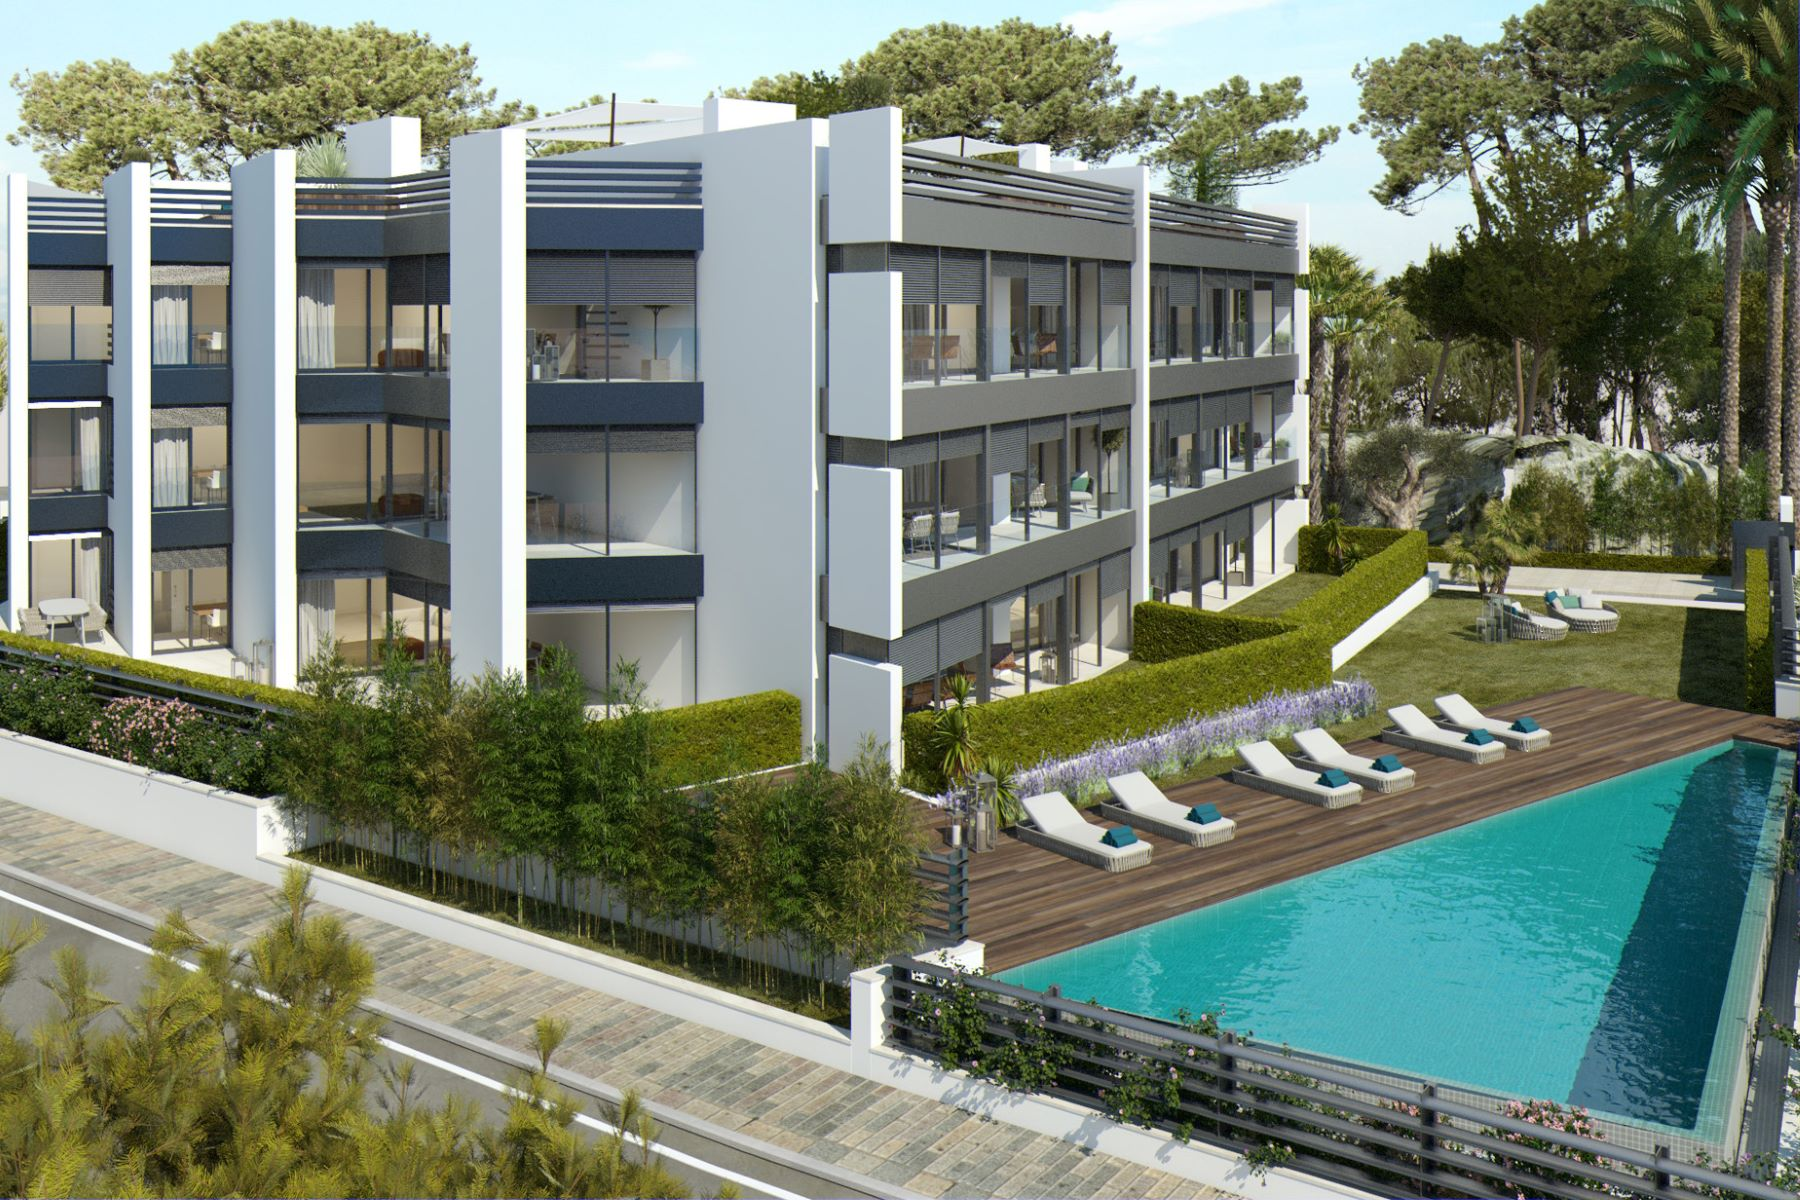 Appartement pour l Vente à Ground floor apartment with private garden and sea views in exclusive new de ... Playa De Aro, Costa Brava, 17250 Espagne